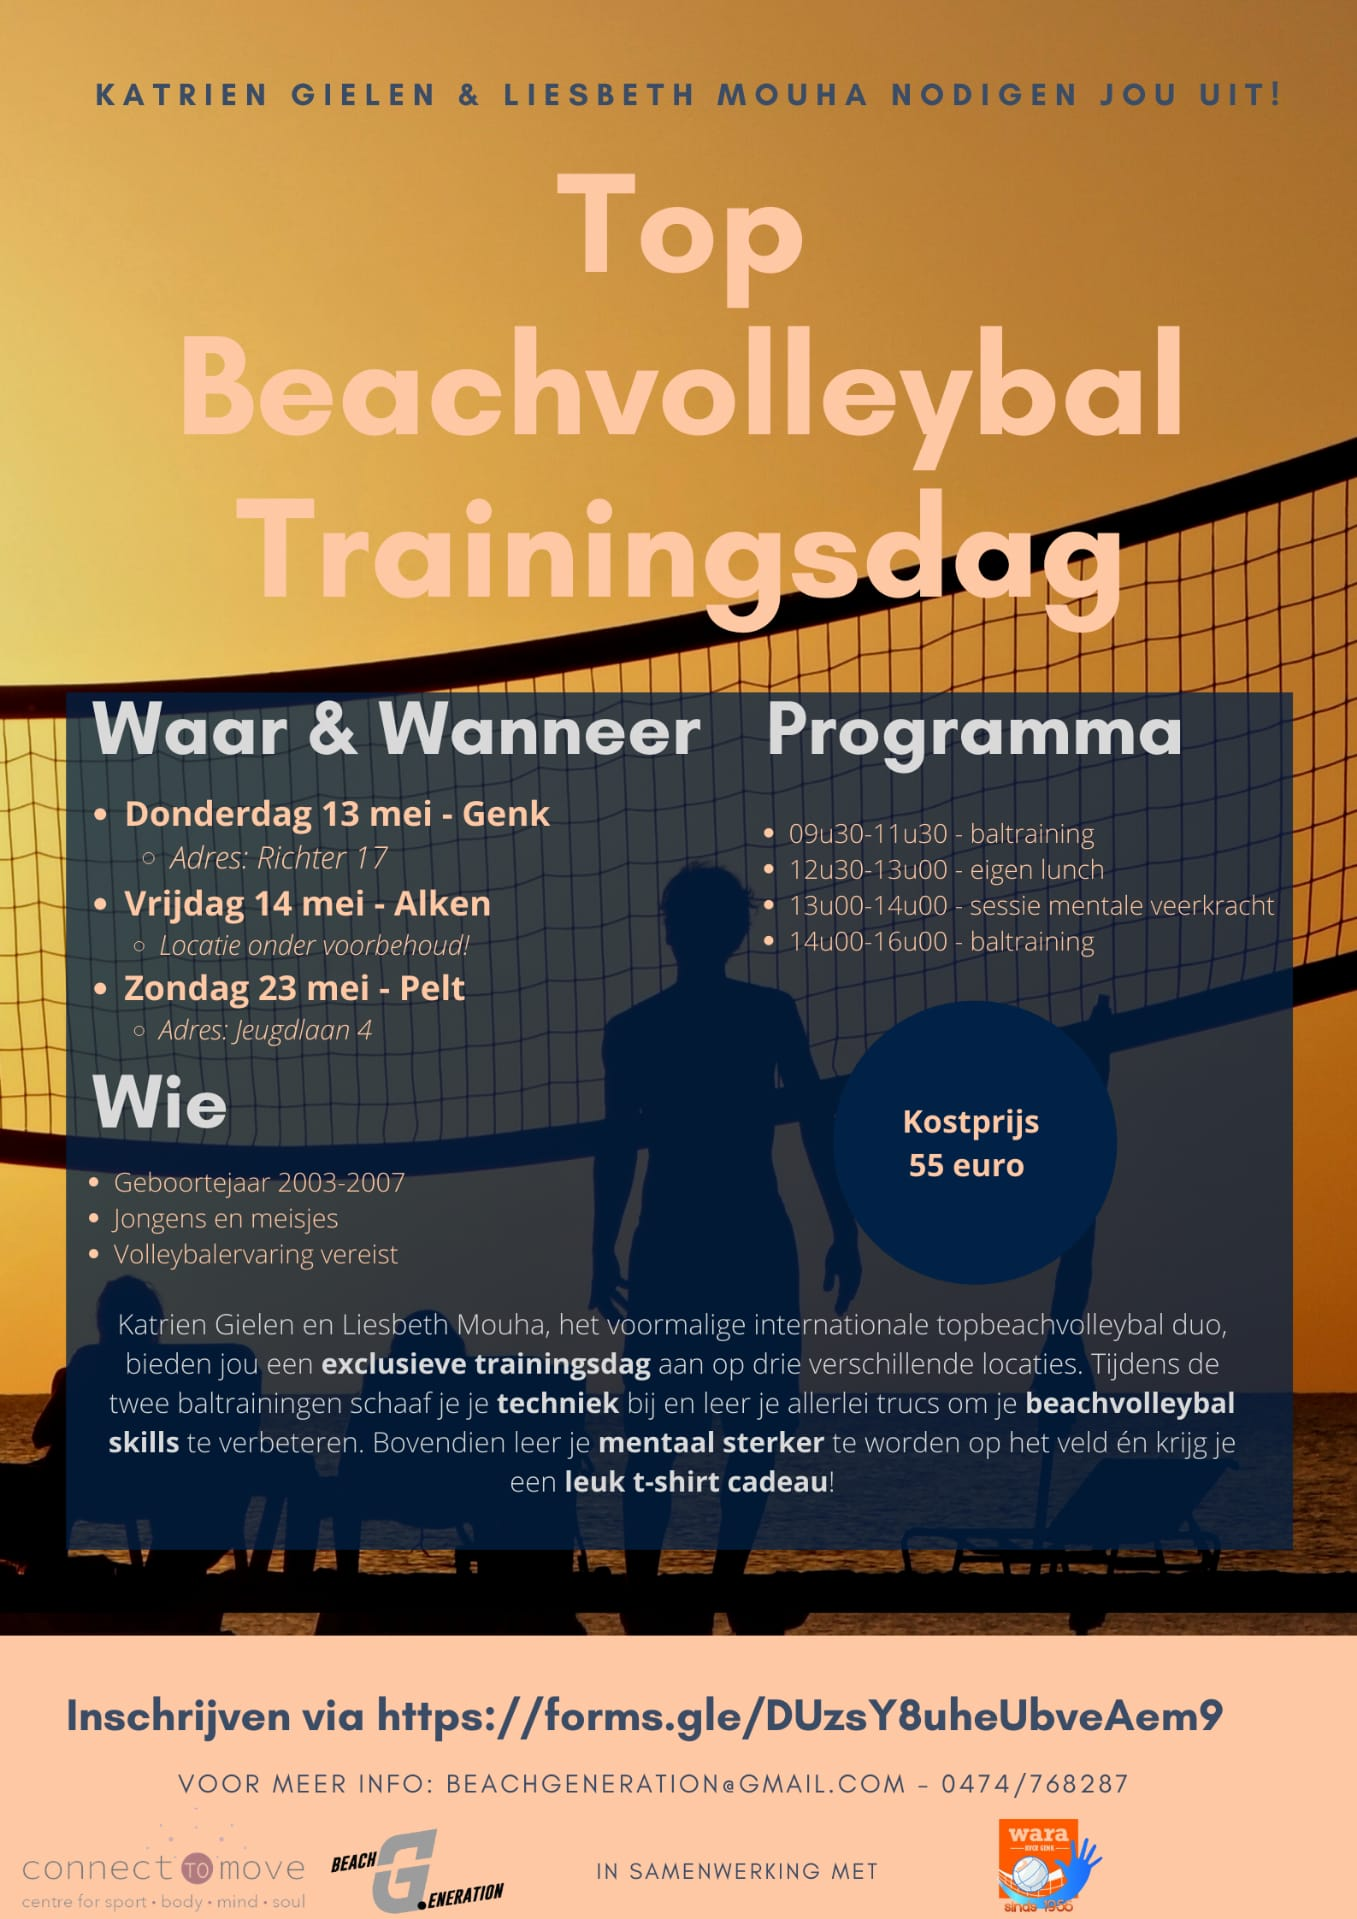 top beachvolleybal trainingsdag